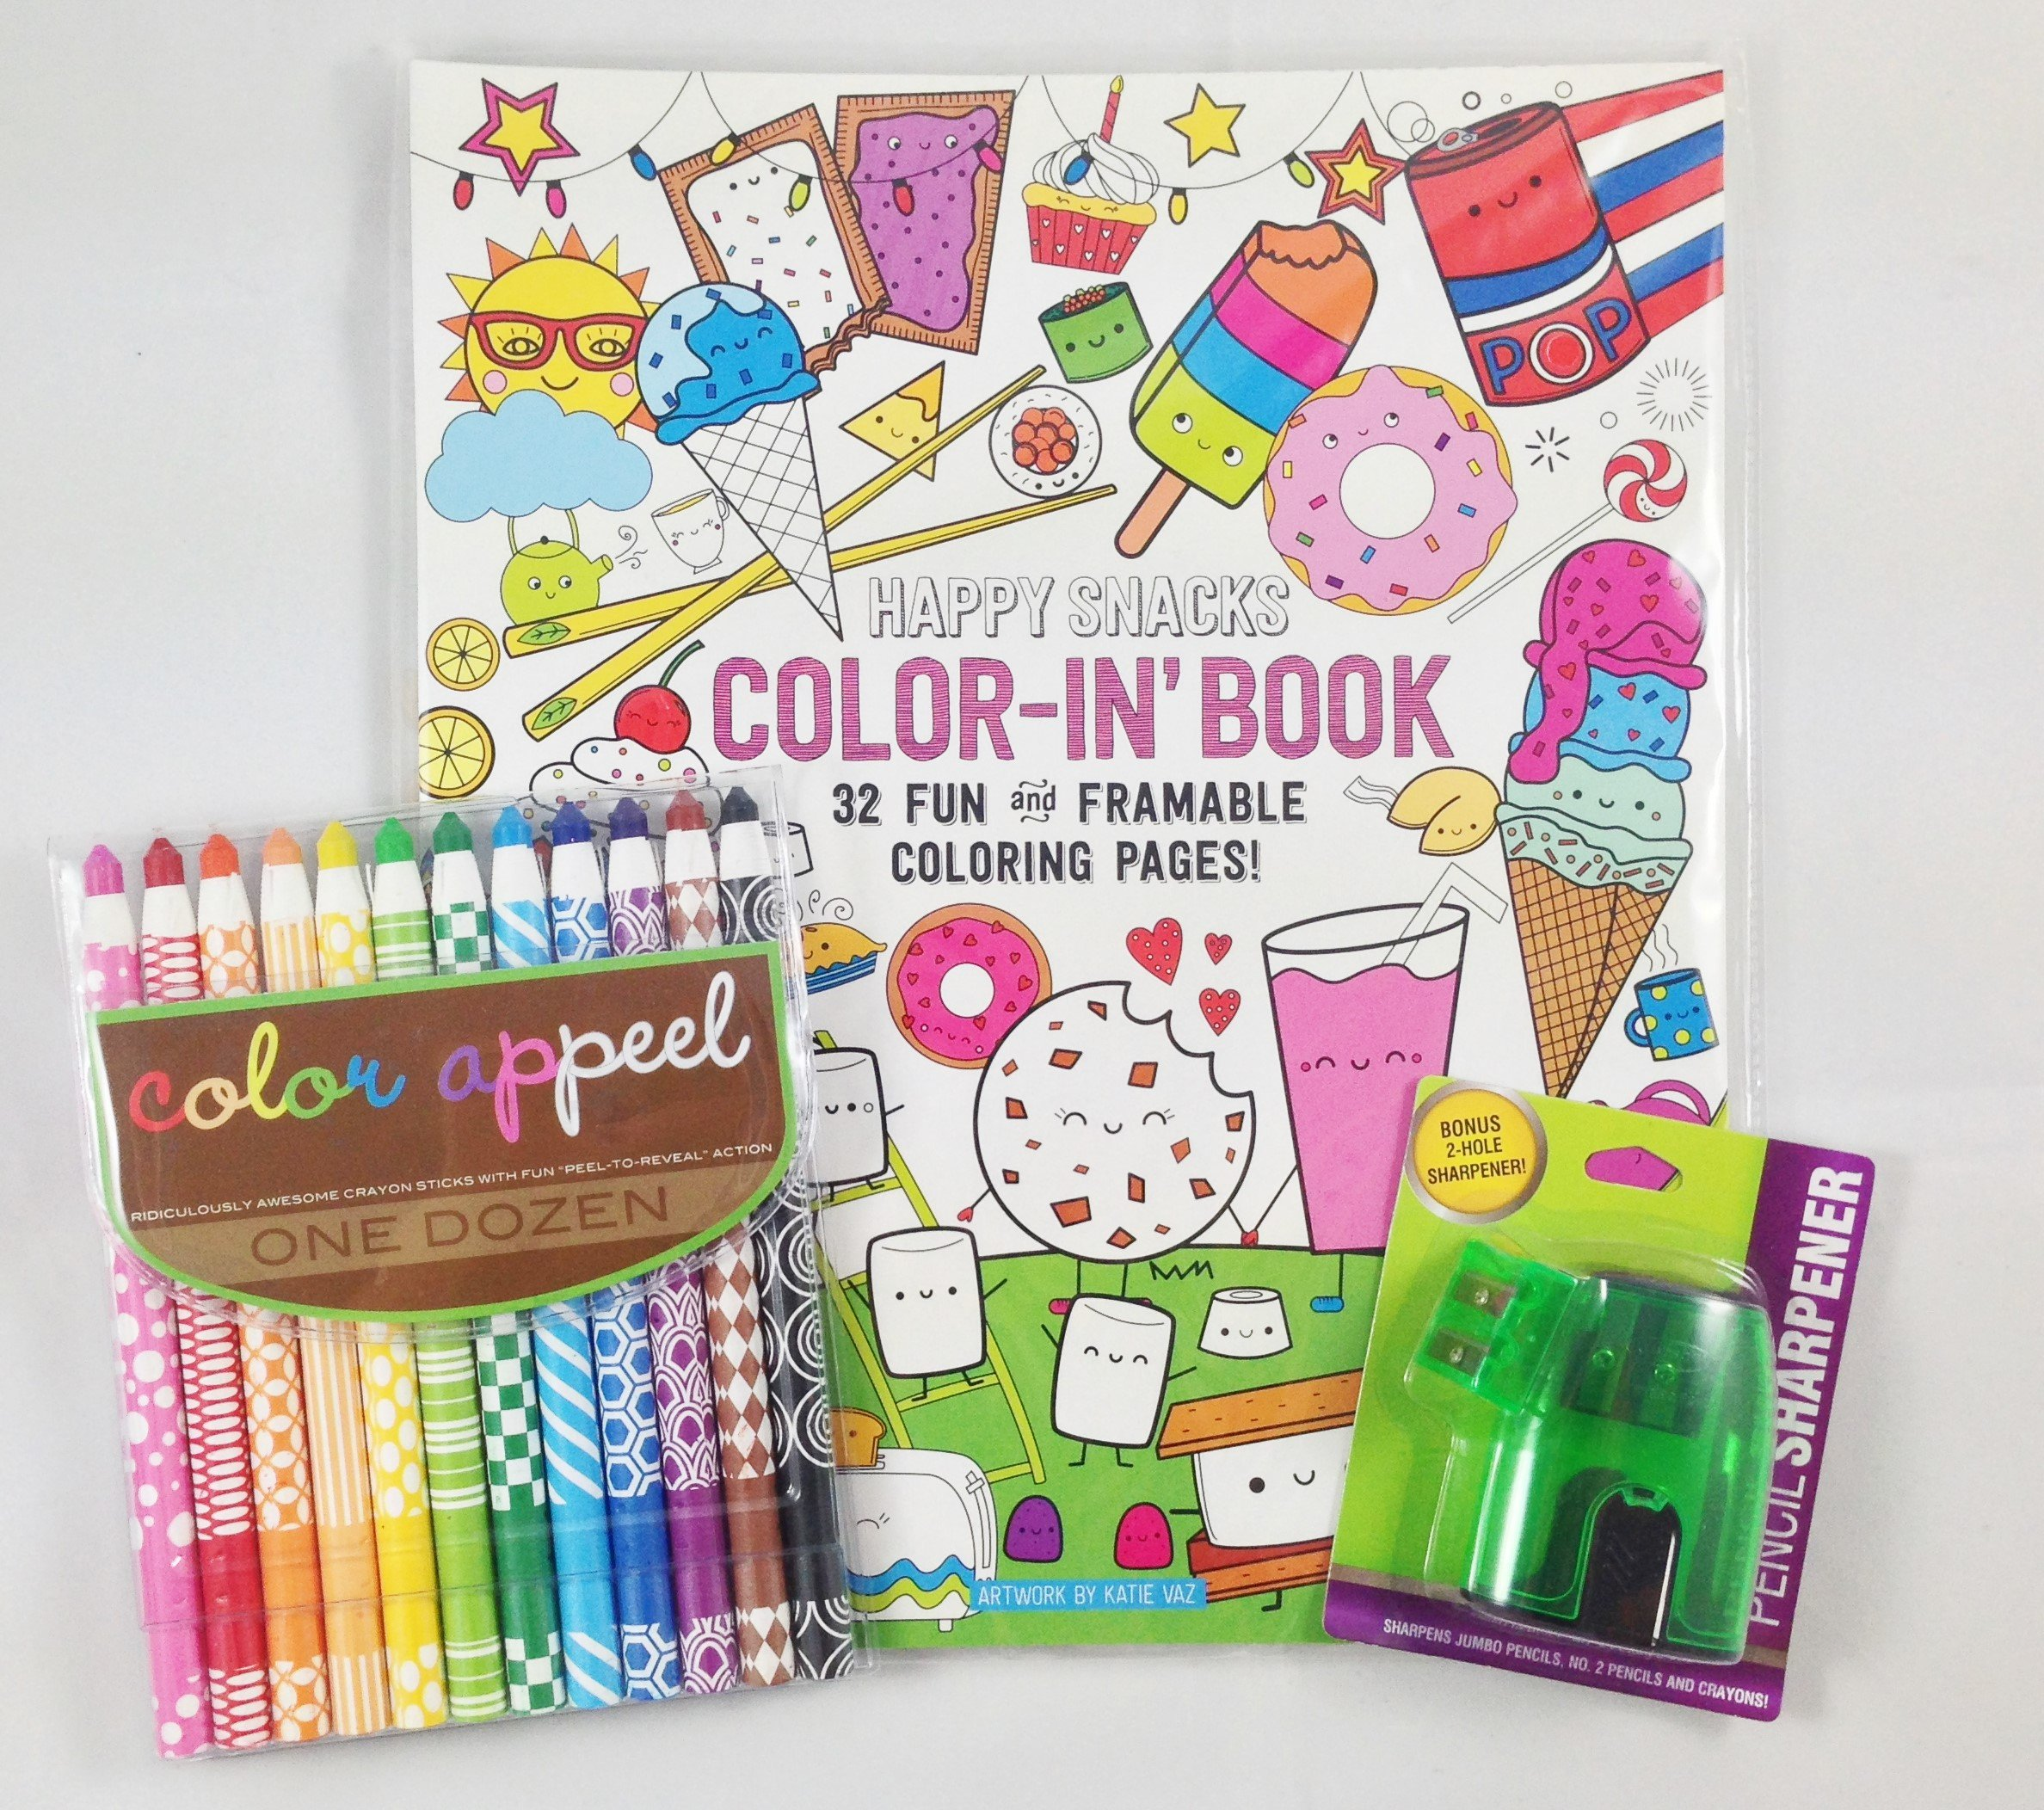 Coloring Book Bundle - 3 Items: International Arrivals Color Appeel Crayon Sticks - Set of 12, Coloring Book - Happy Snacks - 32 Pages - 9x12, and Crayon/Pencil Sharpener (colors may vary)